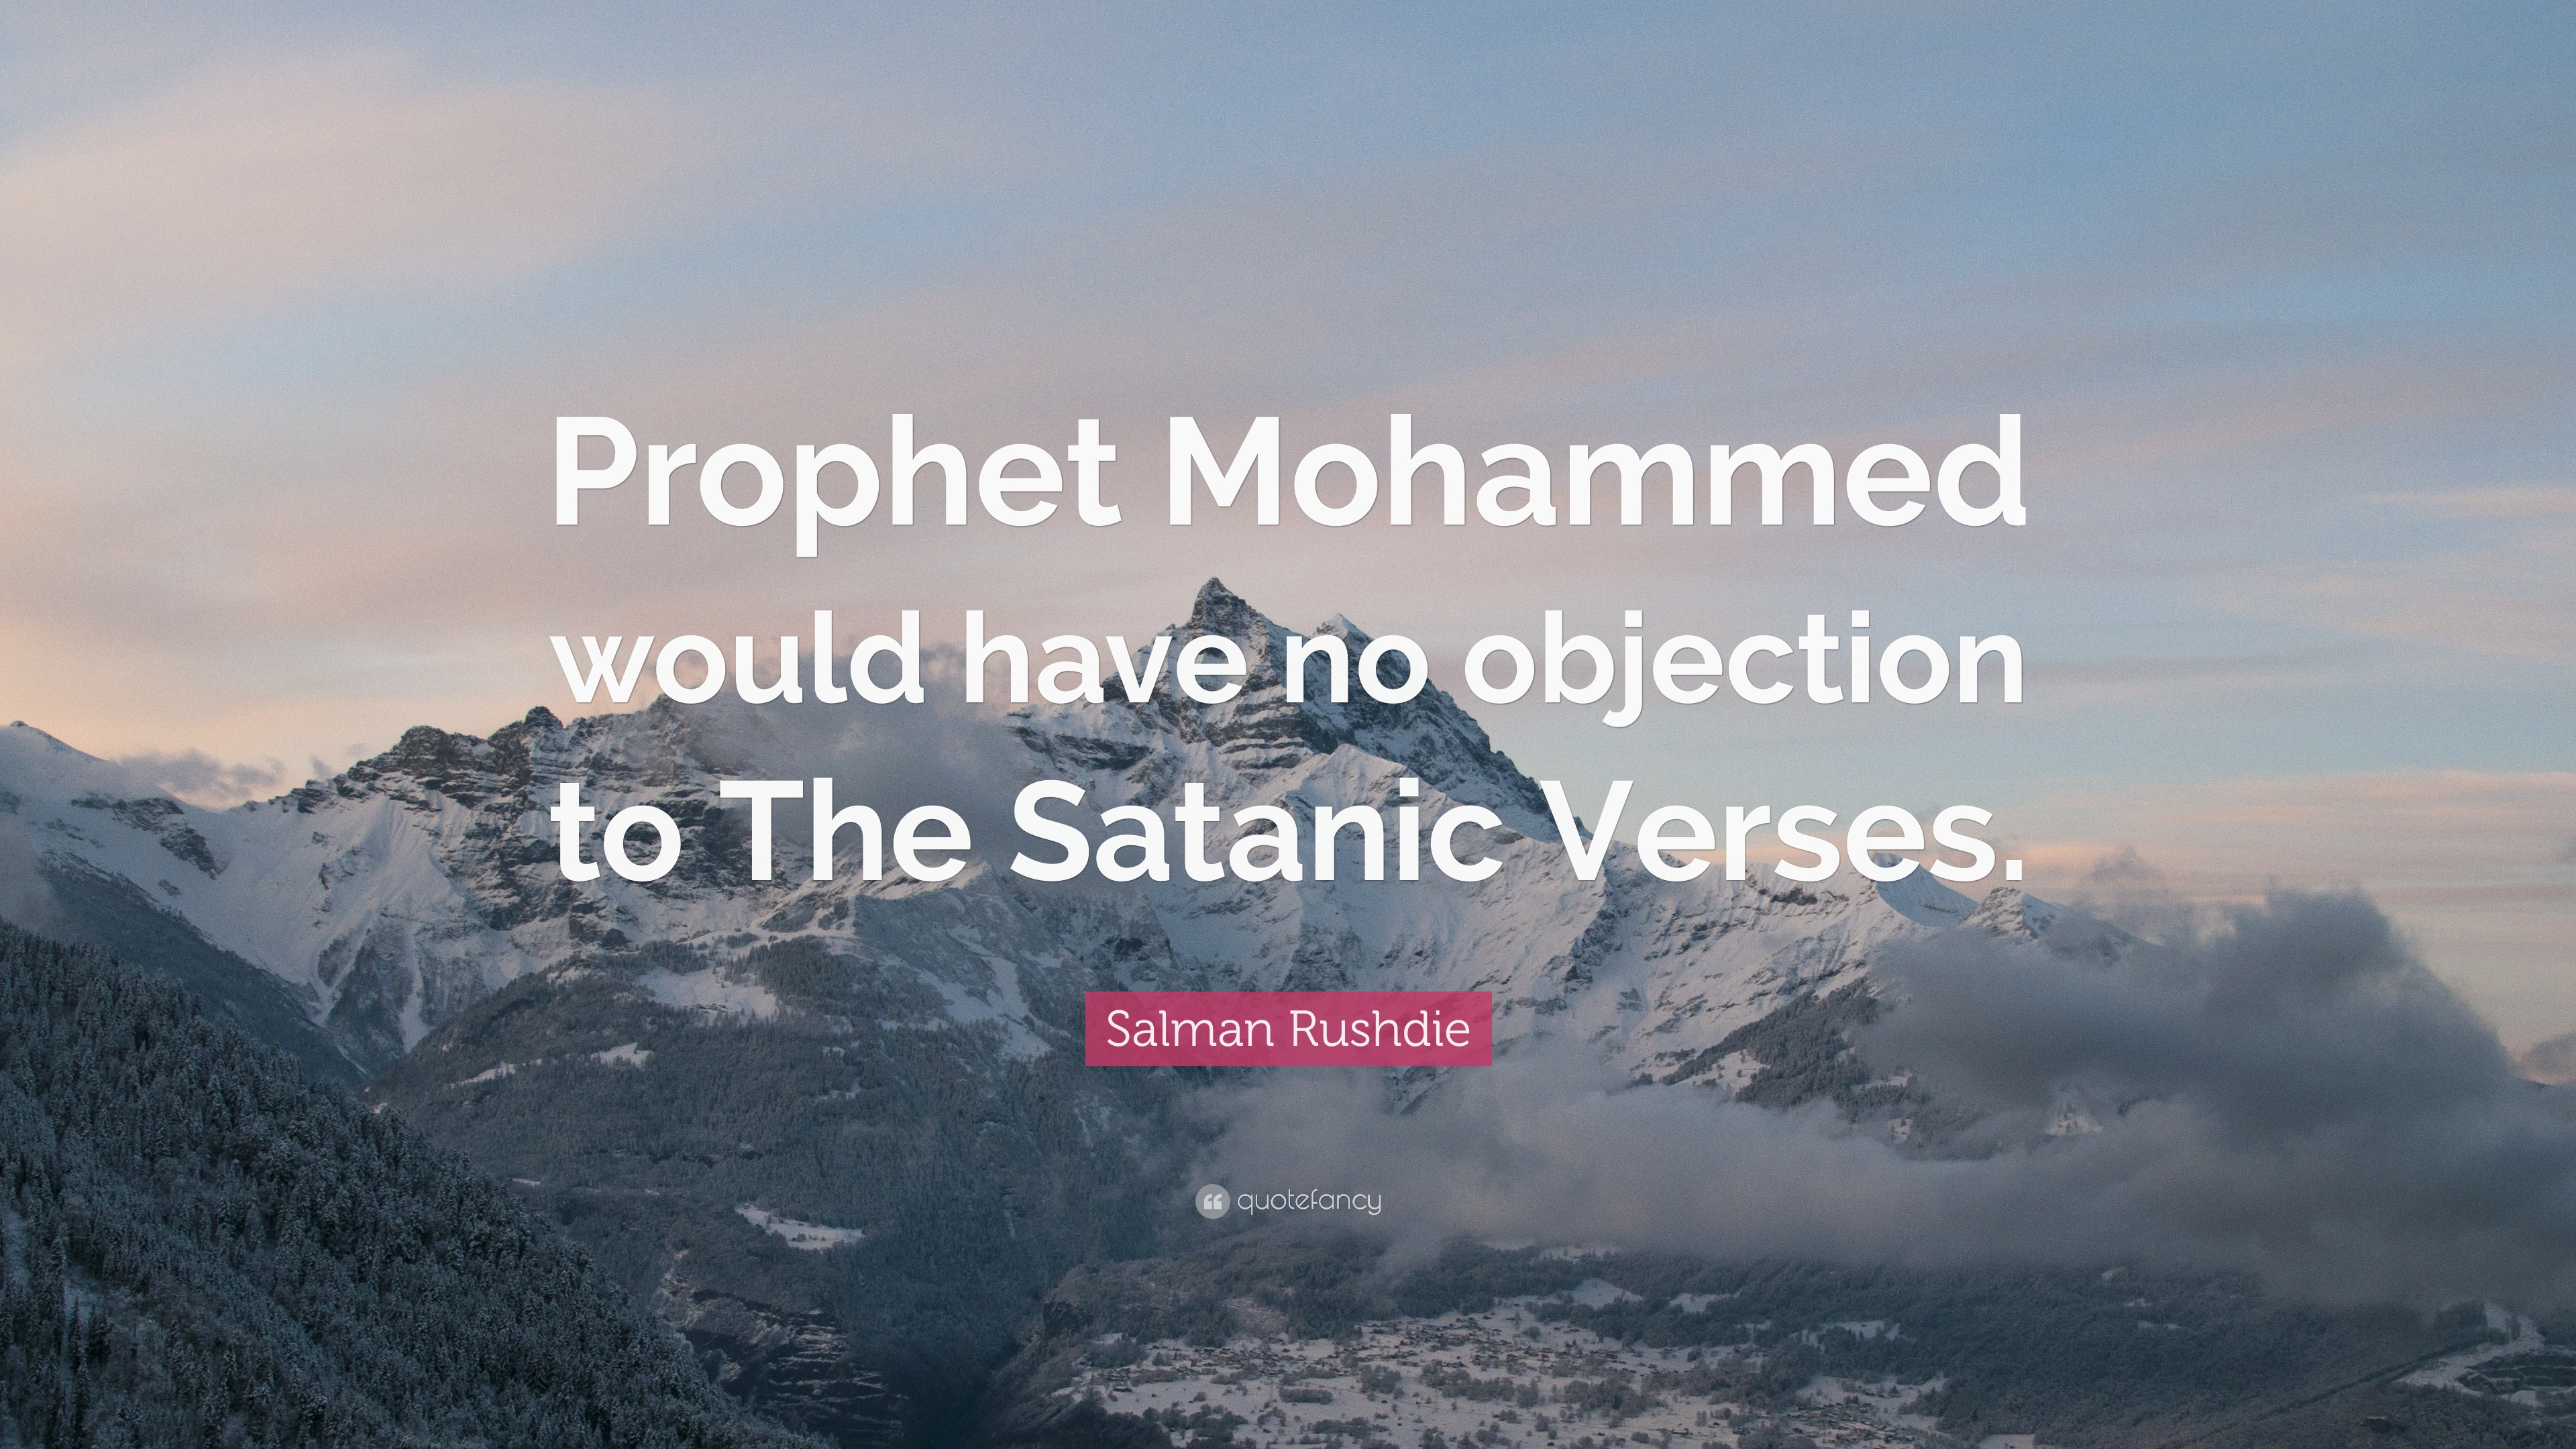 Salman Rushdie Quote: U201cProphet Mohammed Would Have No Objection To The  Satanic Verses.